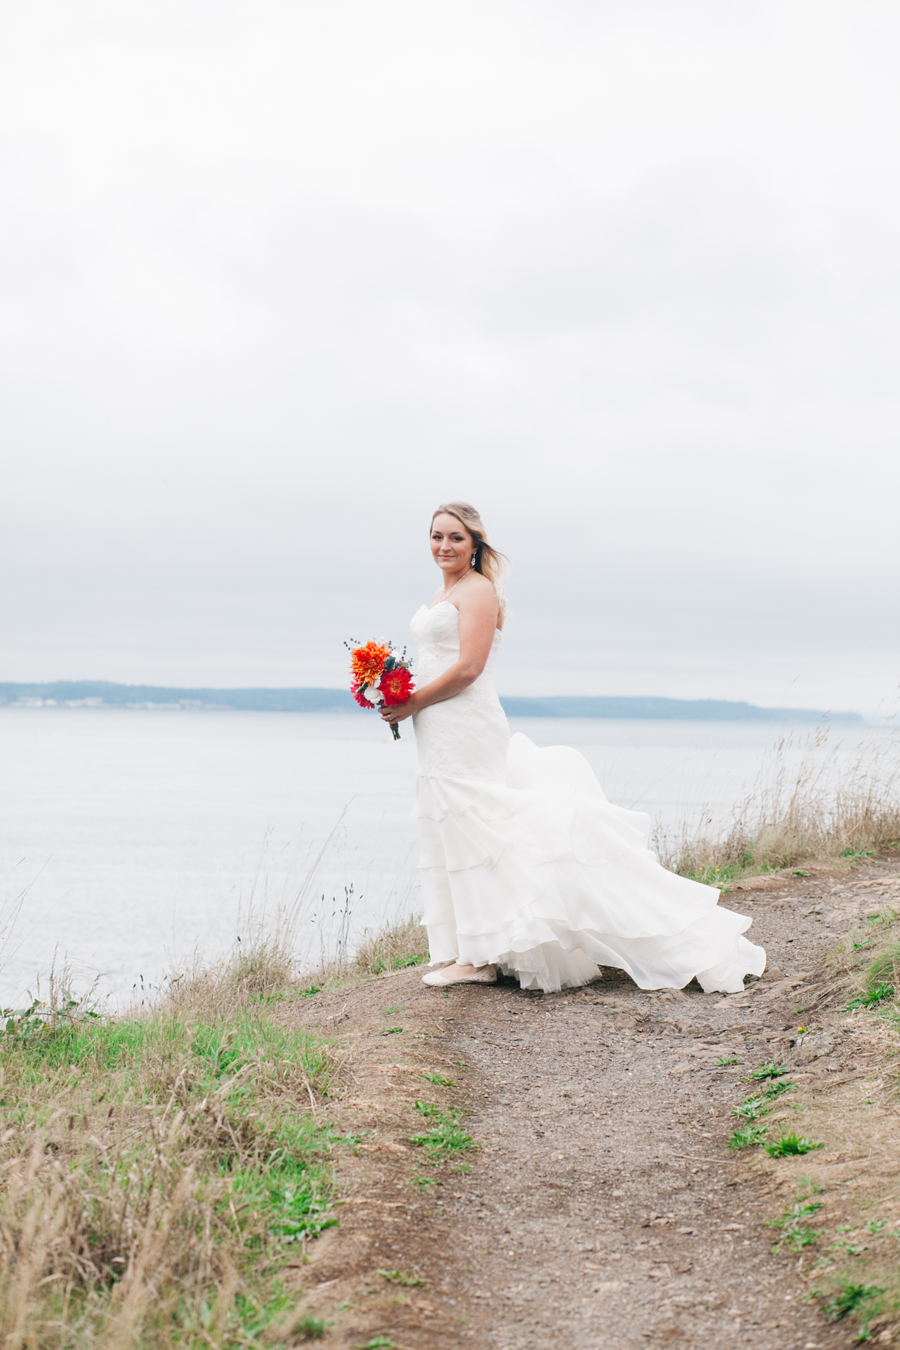 003-bellingham-wedding-photographer-katheryn-moran-photography-rosario-beach-bow-washington-wedding.jpg